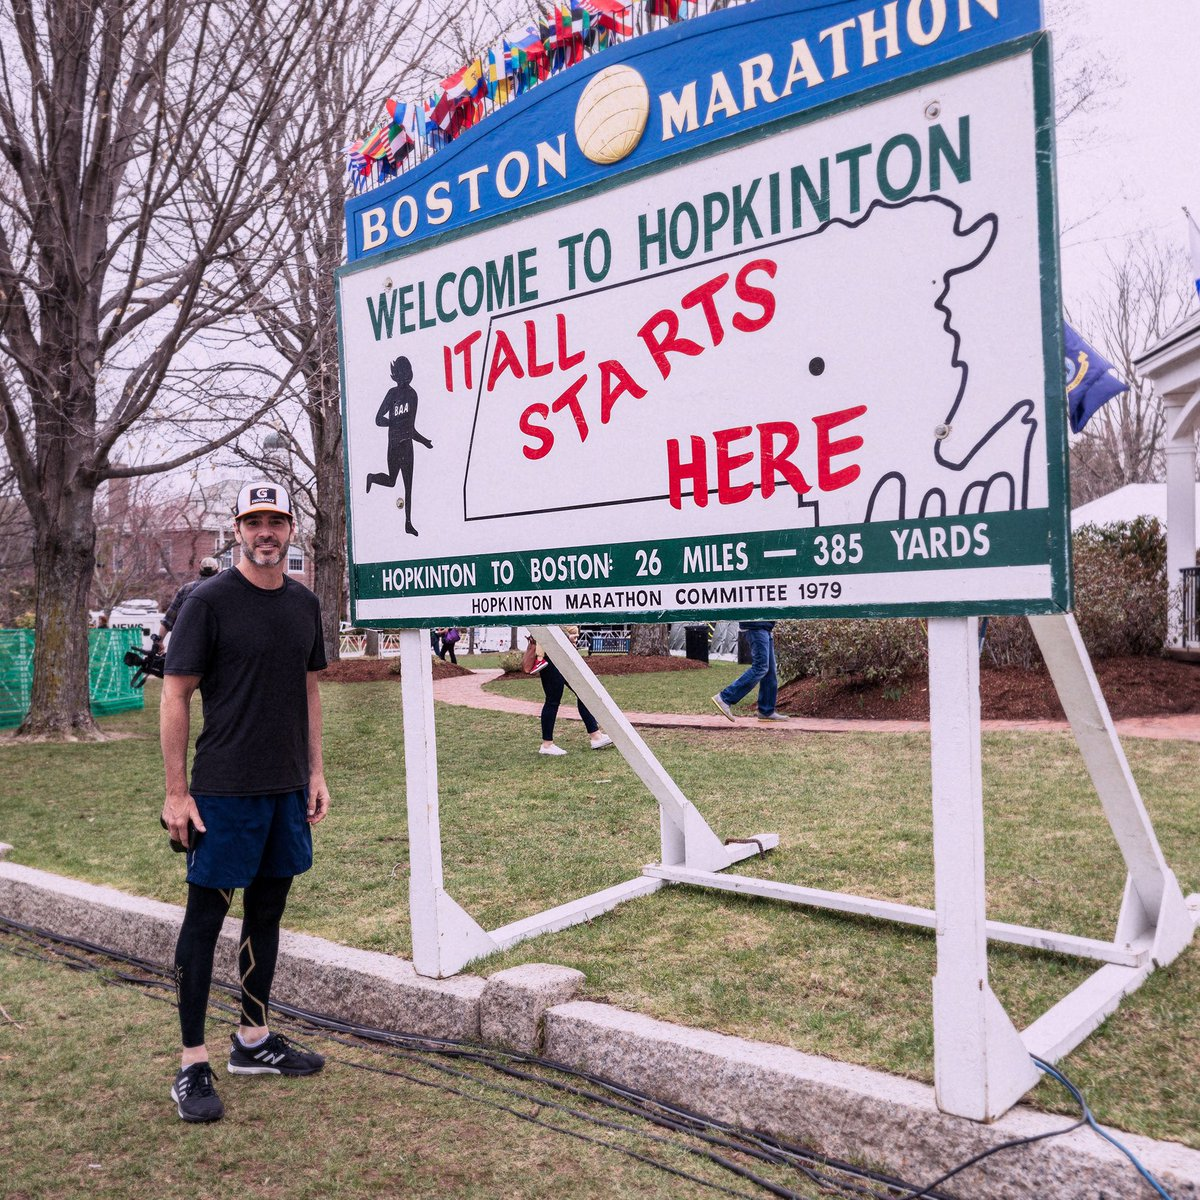 Got to spend some time checking out the course today. The energy here is already awesome, I can't wait for tomorrow. #BostonMarathon #Boston2019 <br>http://pic.twitter.com/H8QI9M27Yb